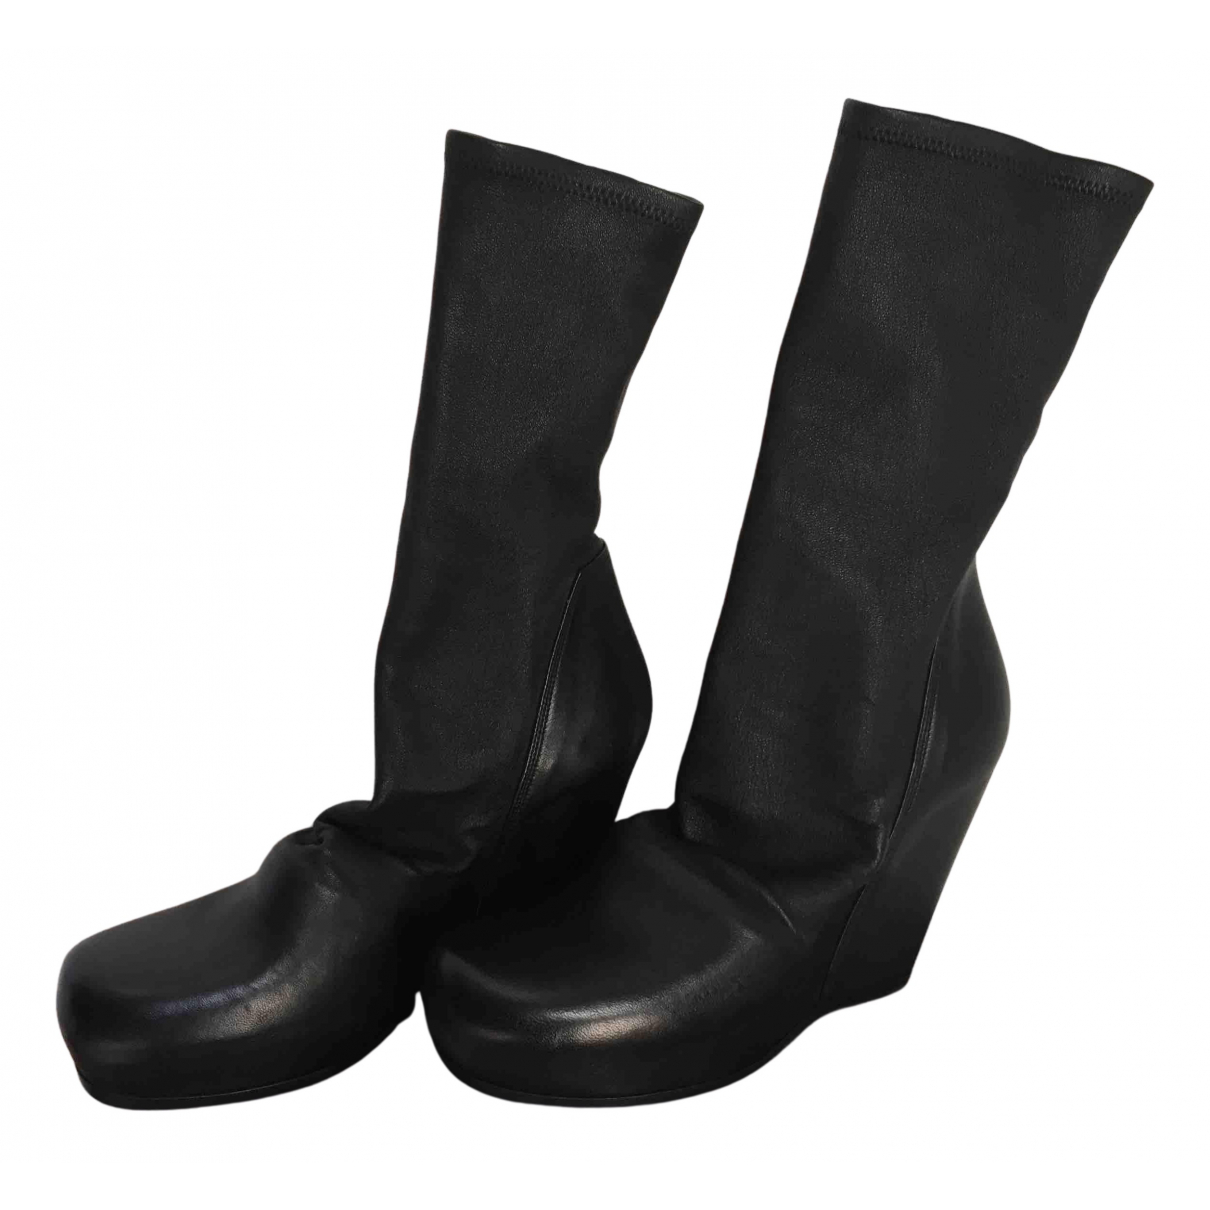 Rick Owens N Black Leather Ankle boots for Women 39 EU